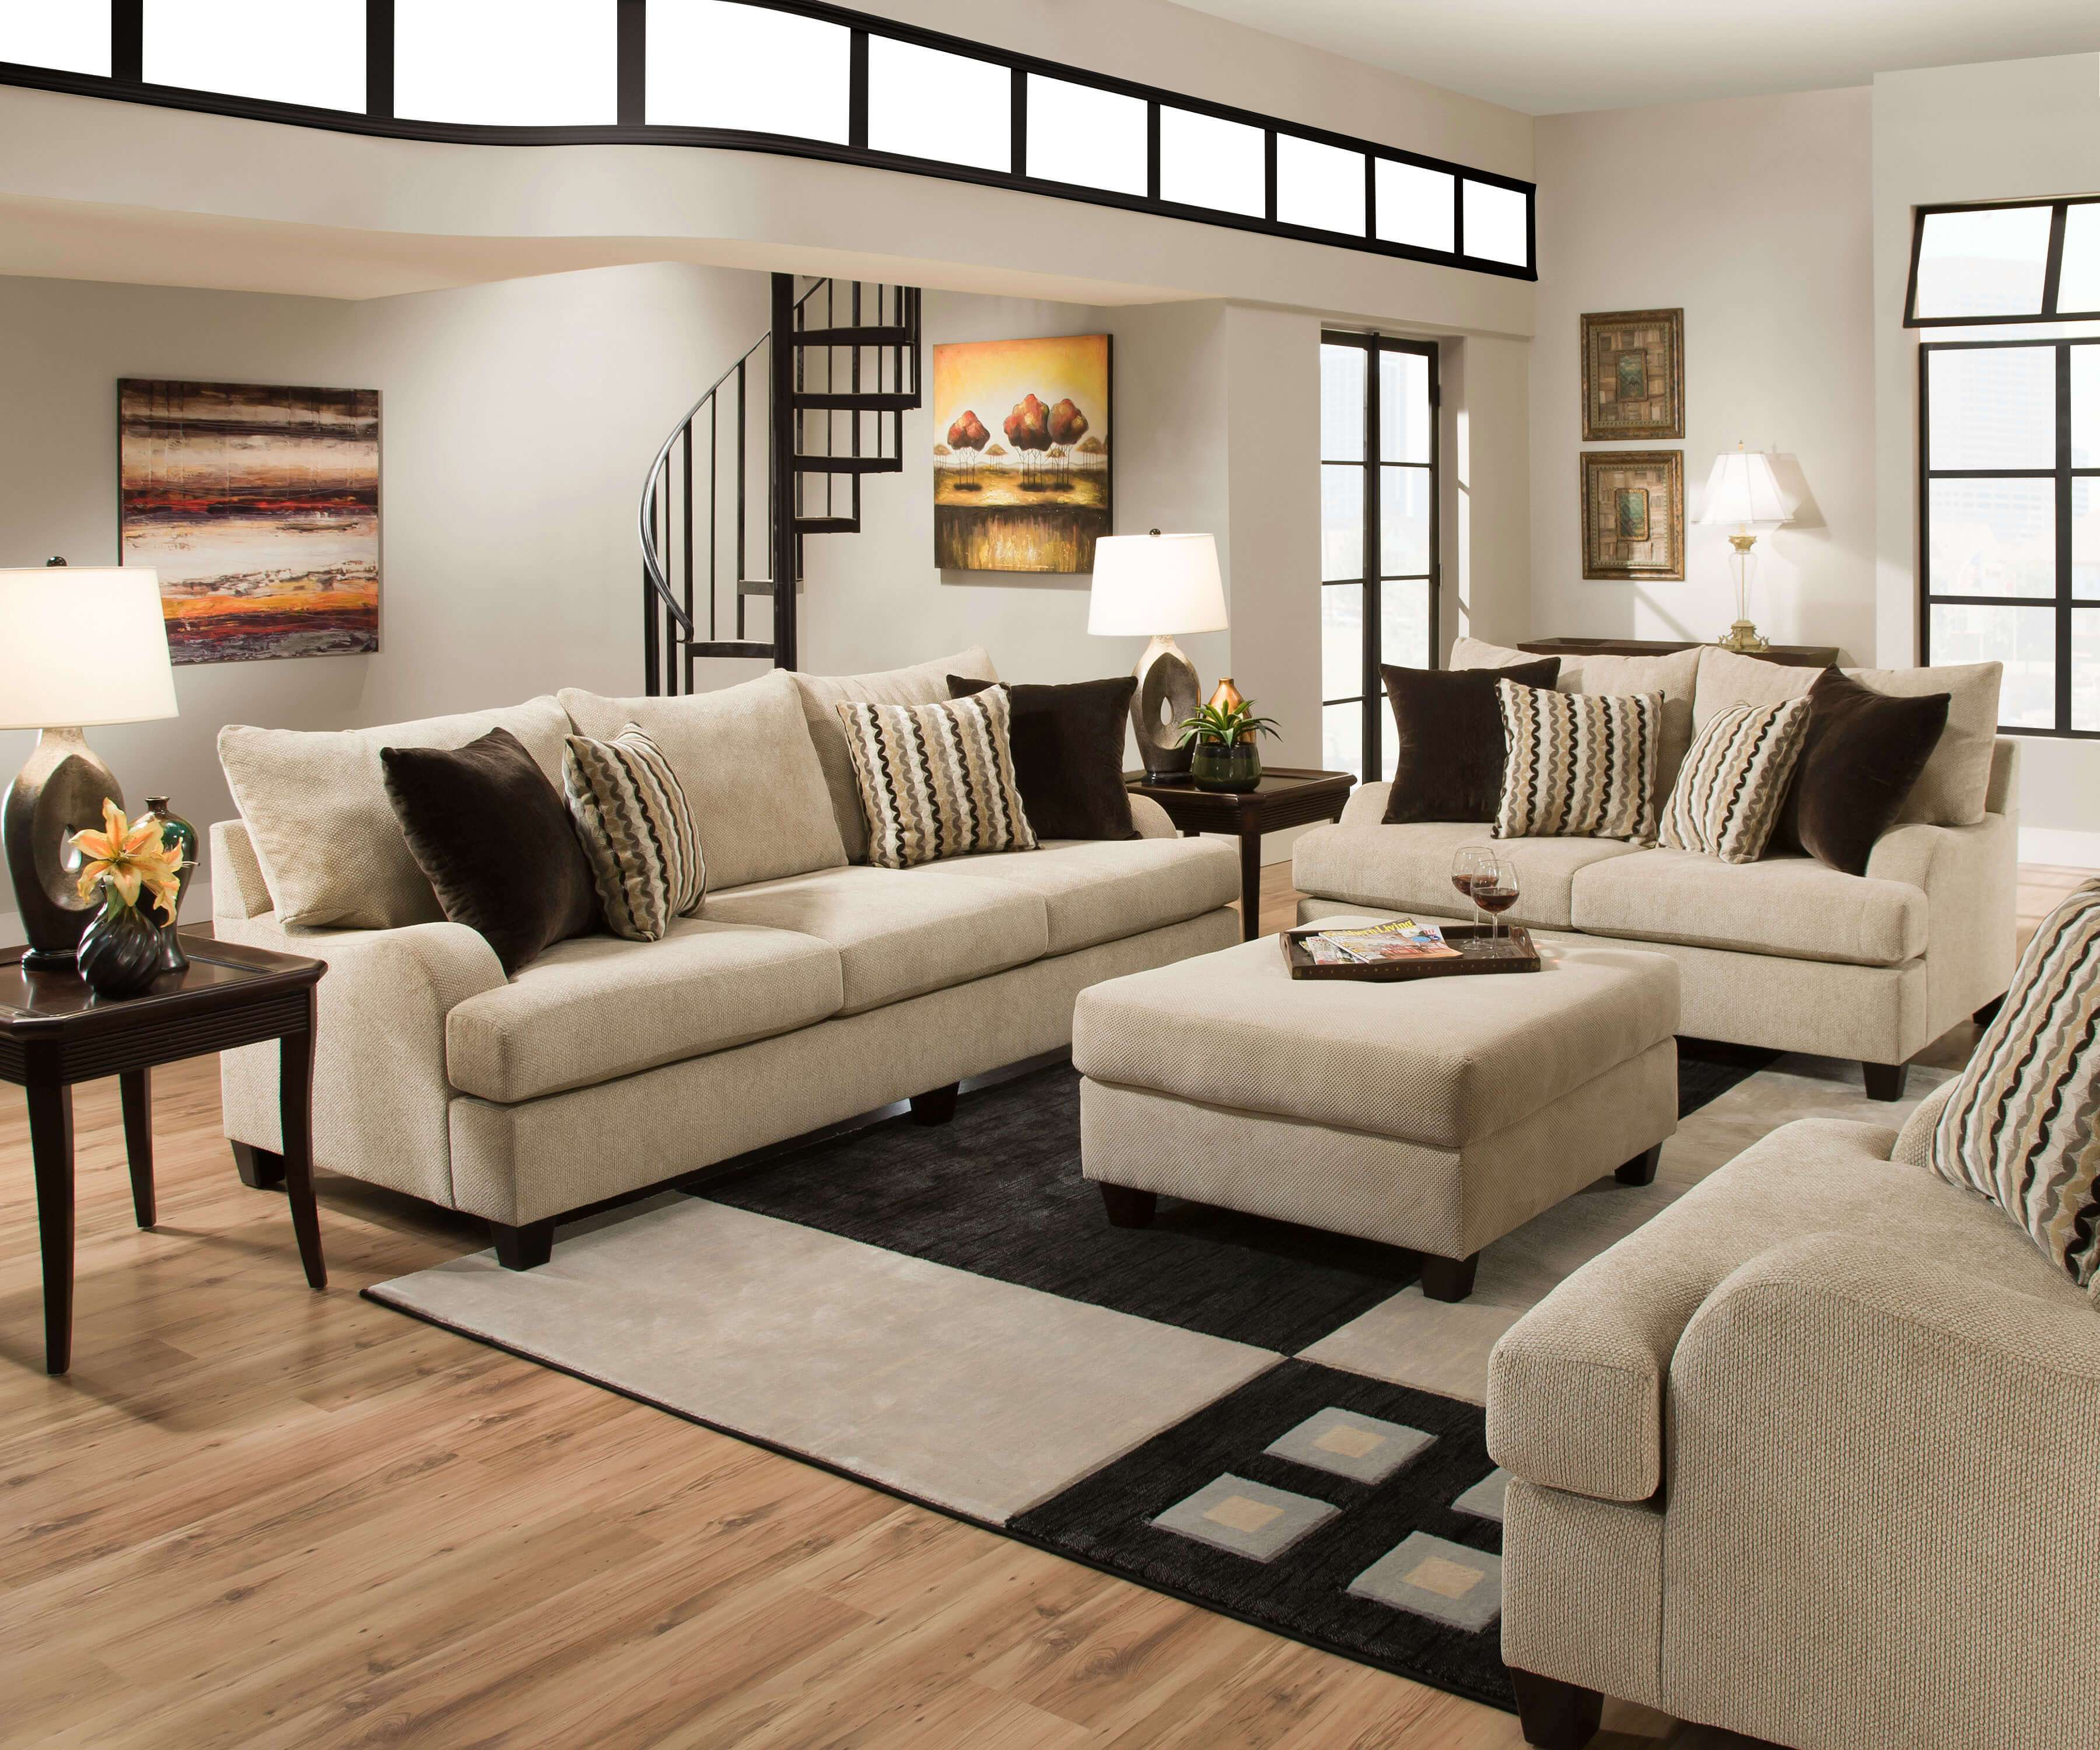 13 Smart Initiatives Of How To Build Living Room Sets Sale